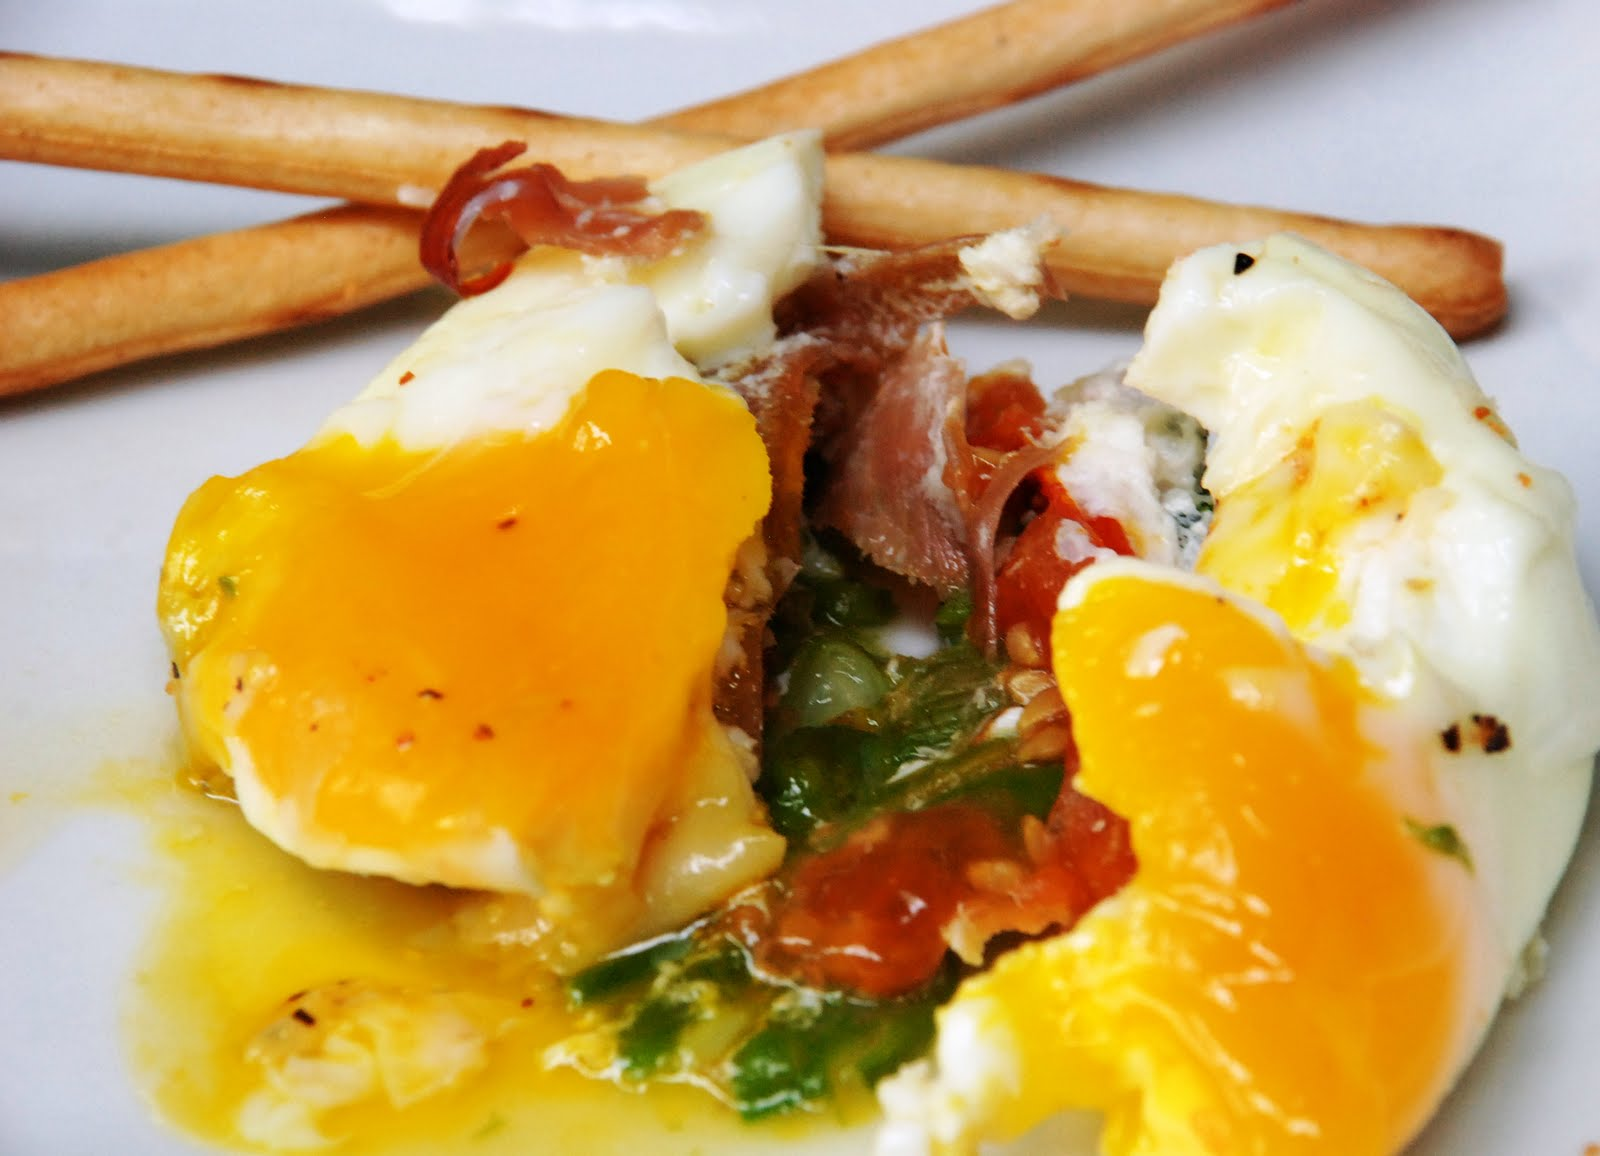 CupCakes and CrabLegs: Baked Egg With Prosciutto, Asparagus and Tomato